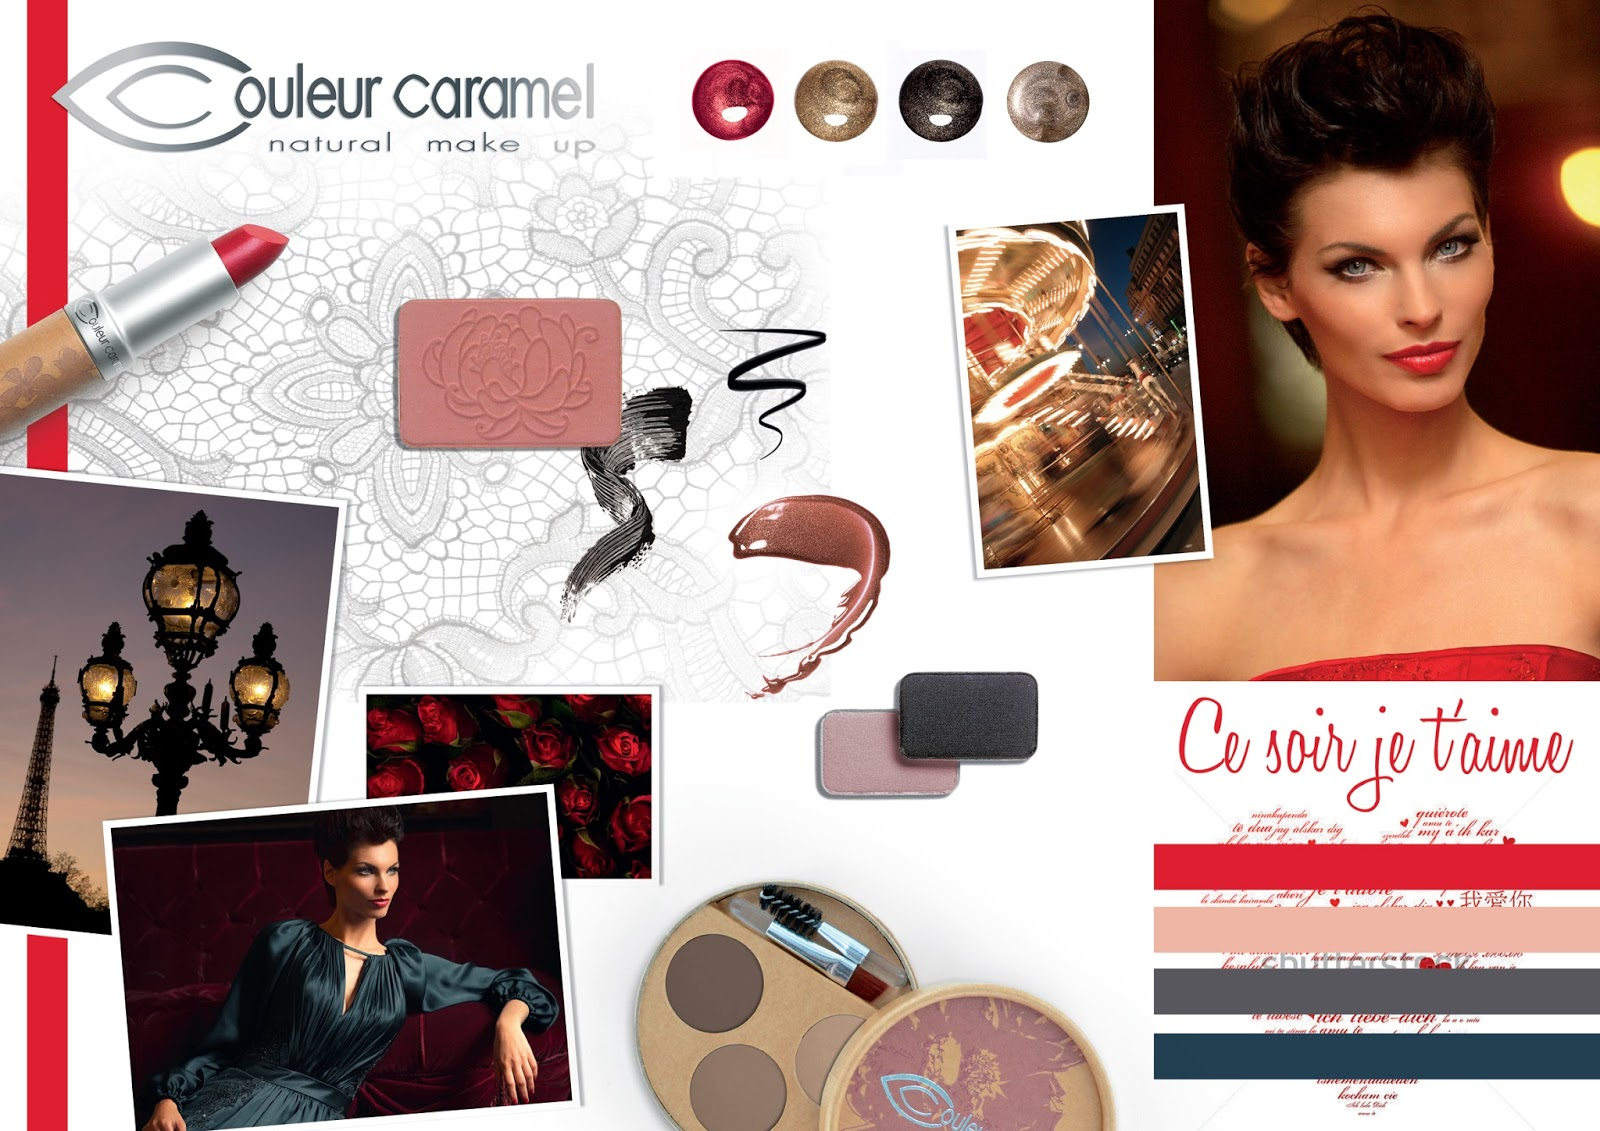 maquillage cosmetique bio